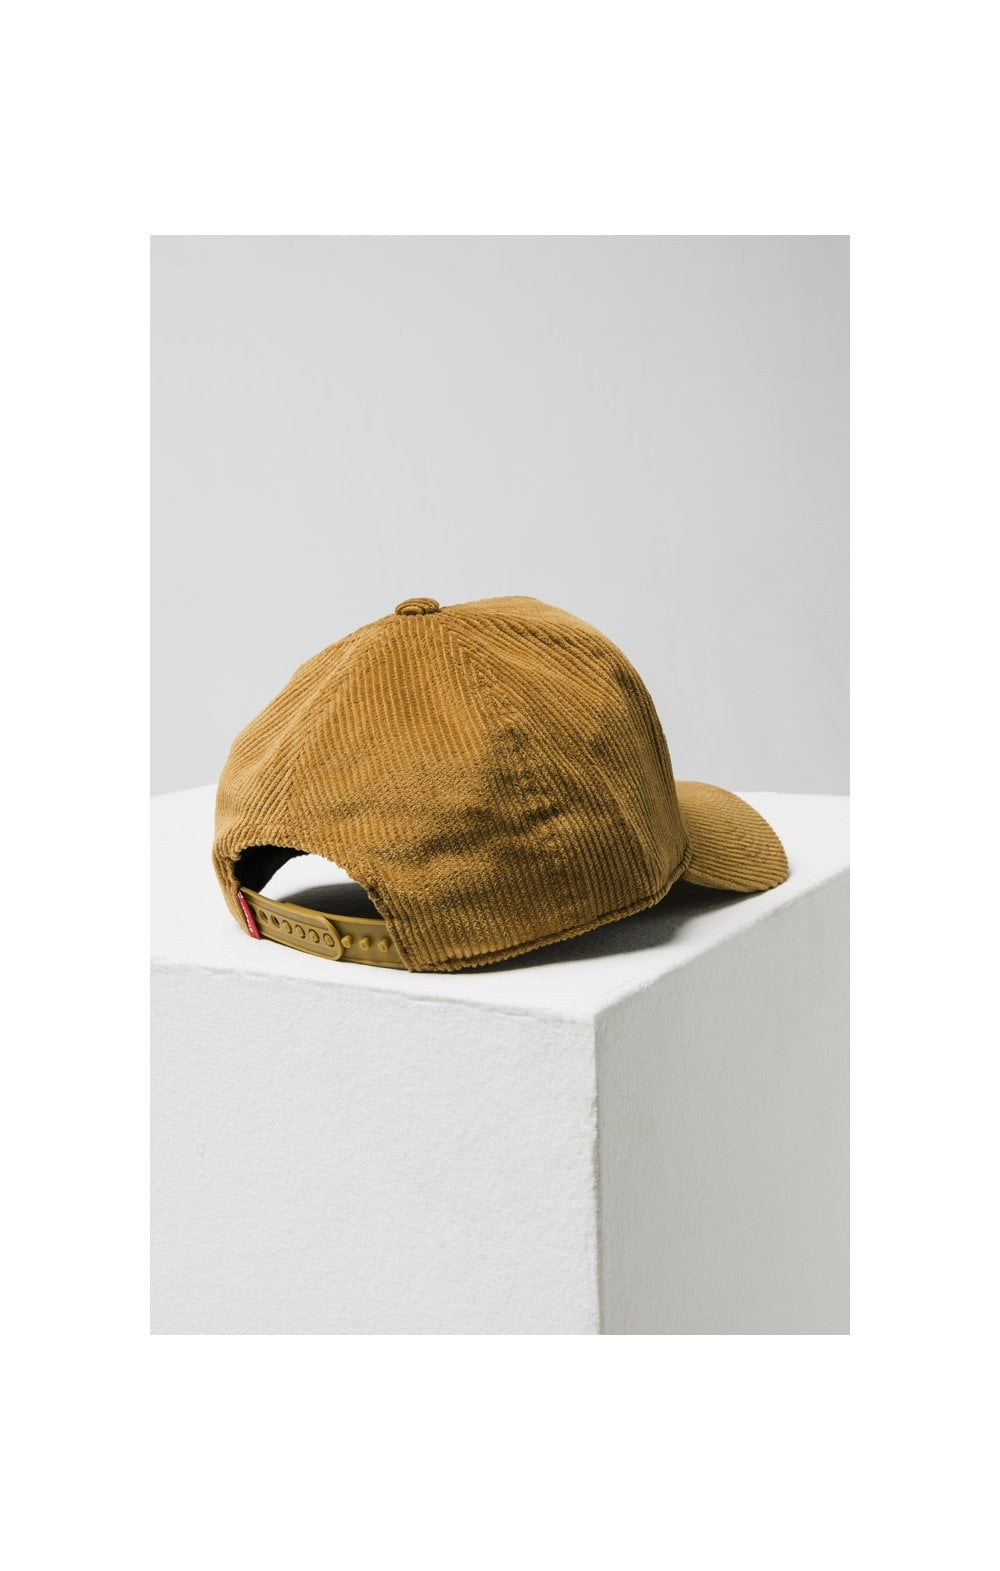 Load image into Gallery viewer, SikSilk Corduroy Full Trucker - Mustard (6)